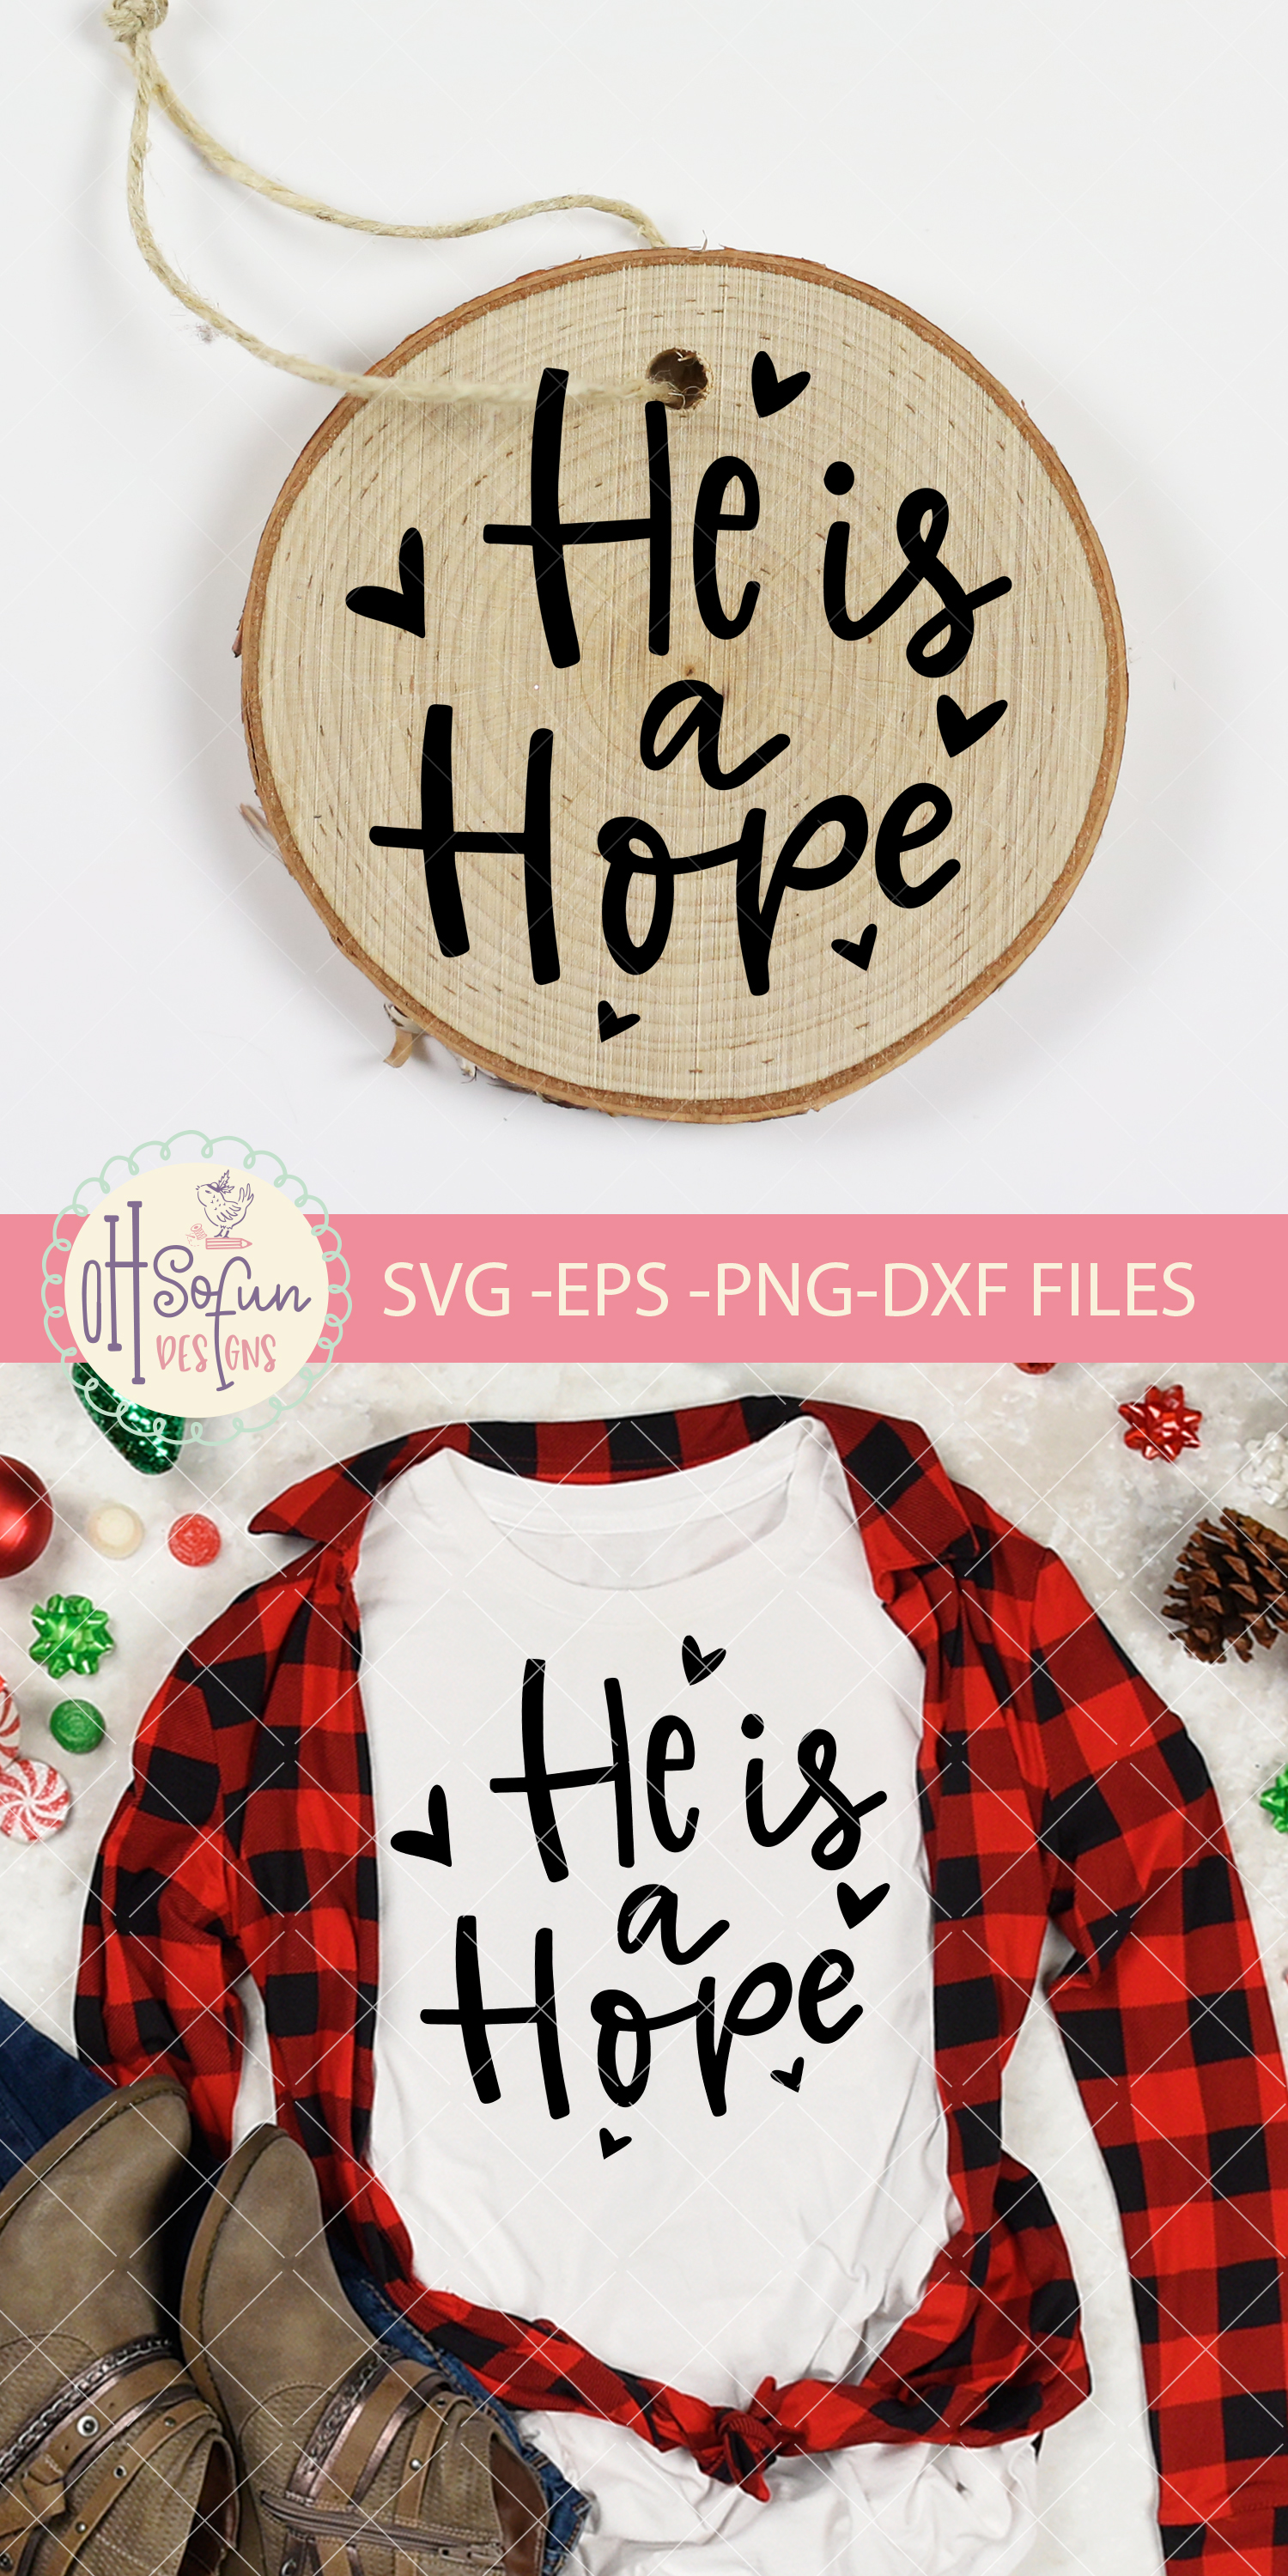 He is a hope, hand lettering christmas ornament SVG example image 2